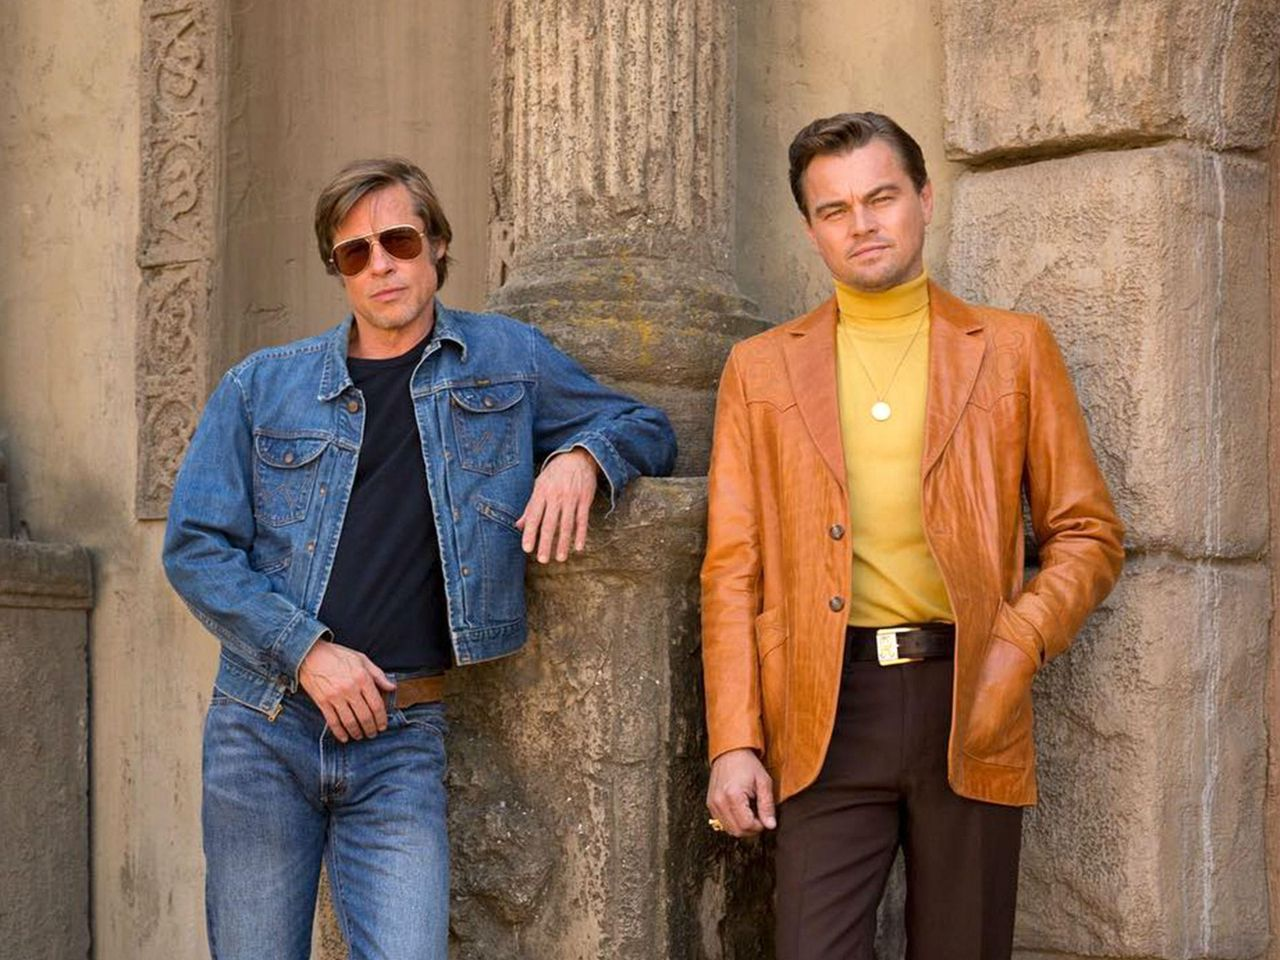 Rick Dalton (Leonardo Di Caprio) and his friend Cliff Booth (Brad Pitt)